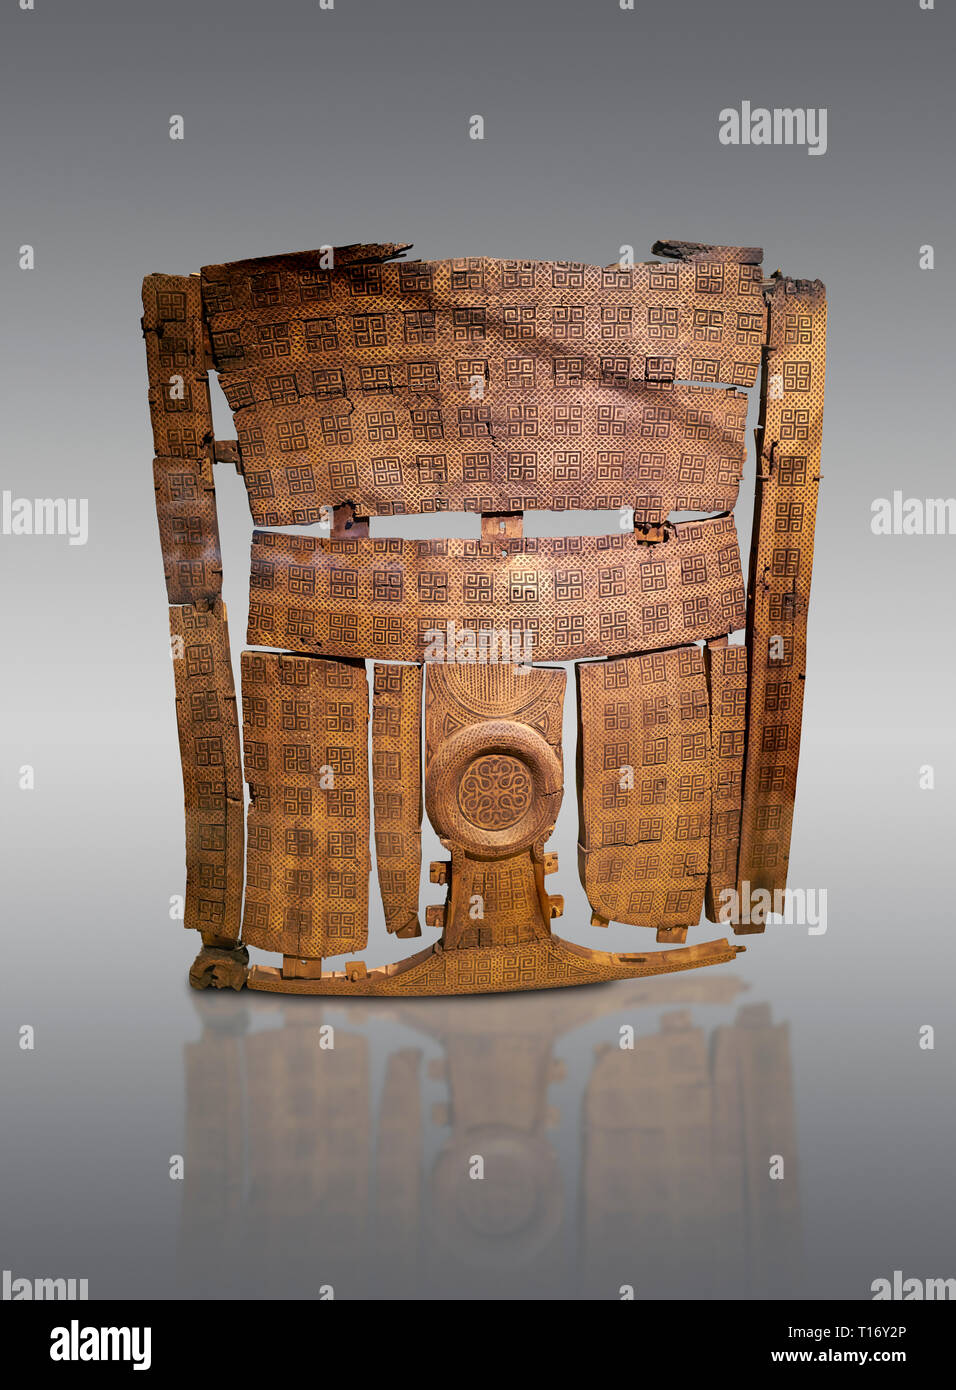 Phrygian inlayed Wooden Screen from the Gordion Great Tumulus. Phrygian Collection, 8th-7th century BC - Museum of Anatolian Civilisations Ankara. Tur Stock Photo